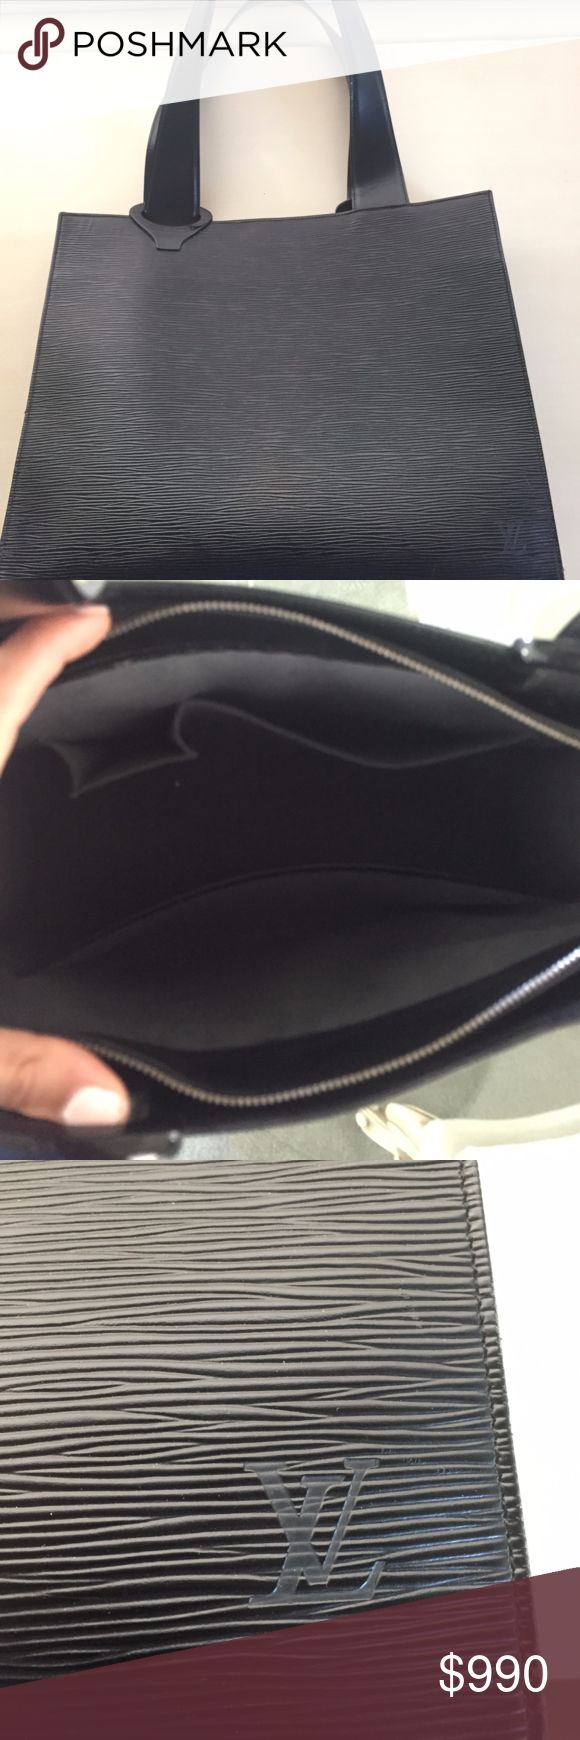 AUTHENTIC LOUIS VUITTON Black Shoulder Bag Ultra slick Epi Leather black shoulder bag. Perfect for any meetings, business gatherings, dinners/ outings. Big side bag, in GREAT condition. Purchased in Italy. Has one very tiny white mark near  the bottom. Louis Vuitton Bags Shoulder Bags